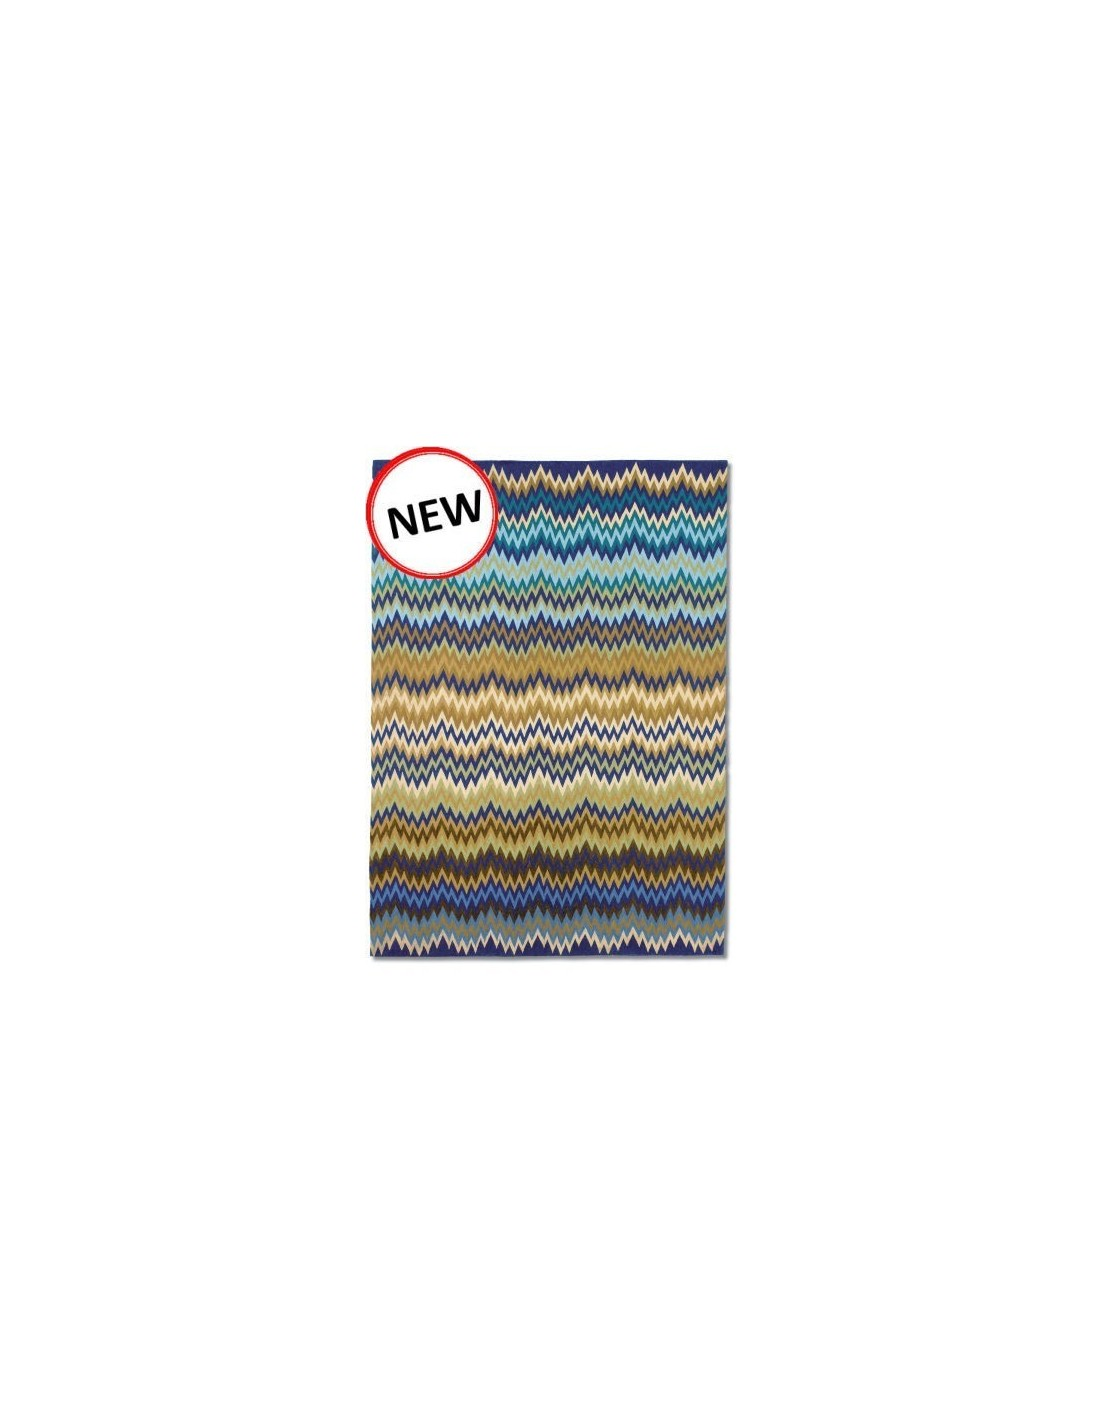 contemporary rug tapis missoni home piccardia blu 170 designed by missoni home. Black Bedroom Furniture Sets. Home Design Ideas